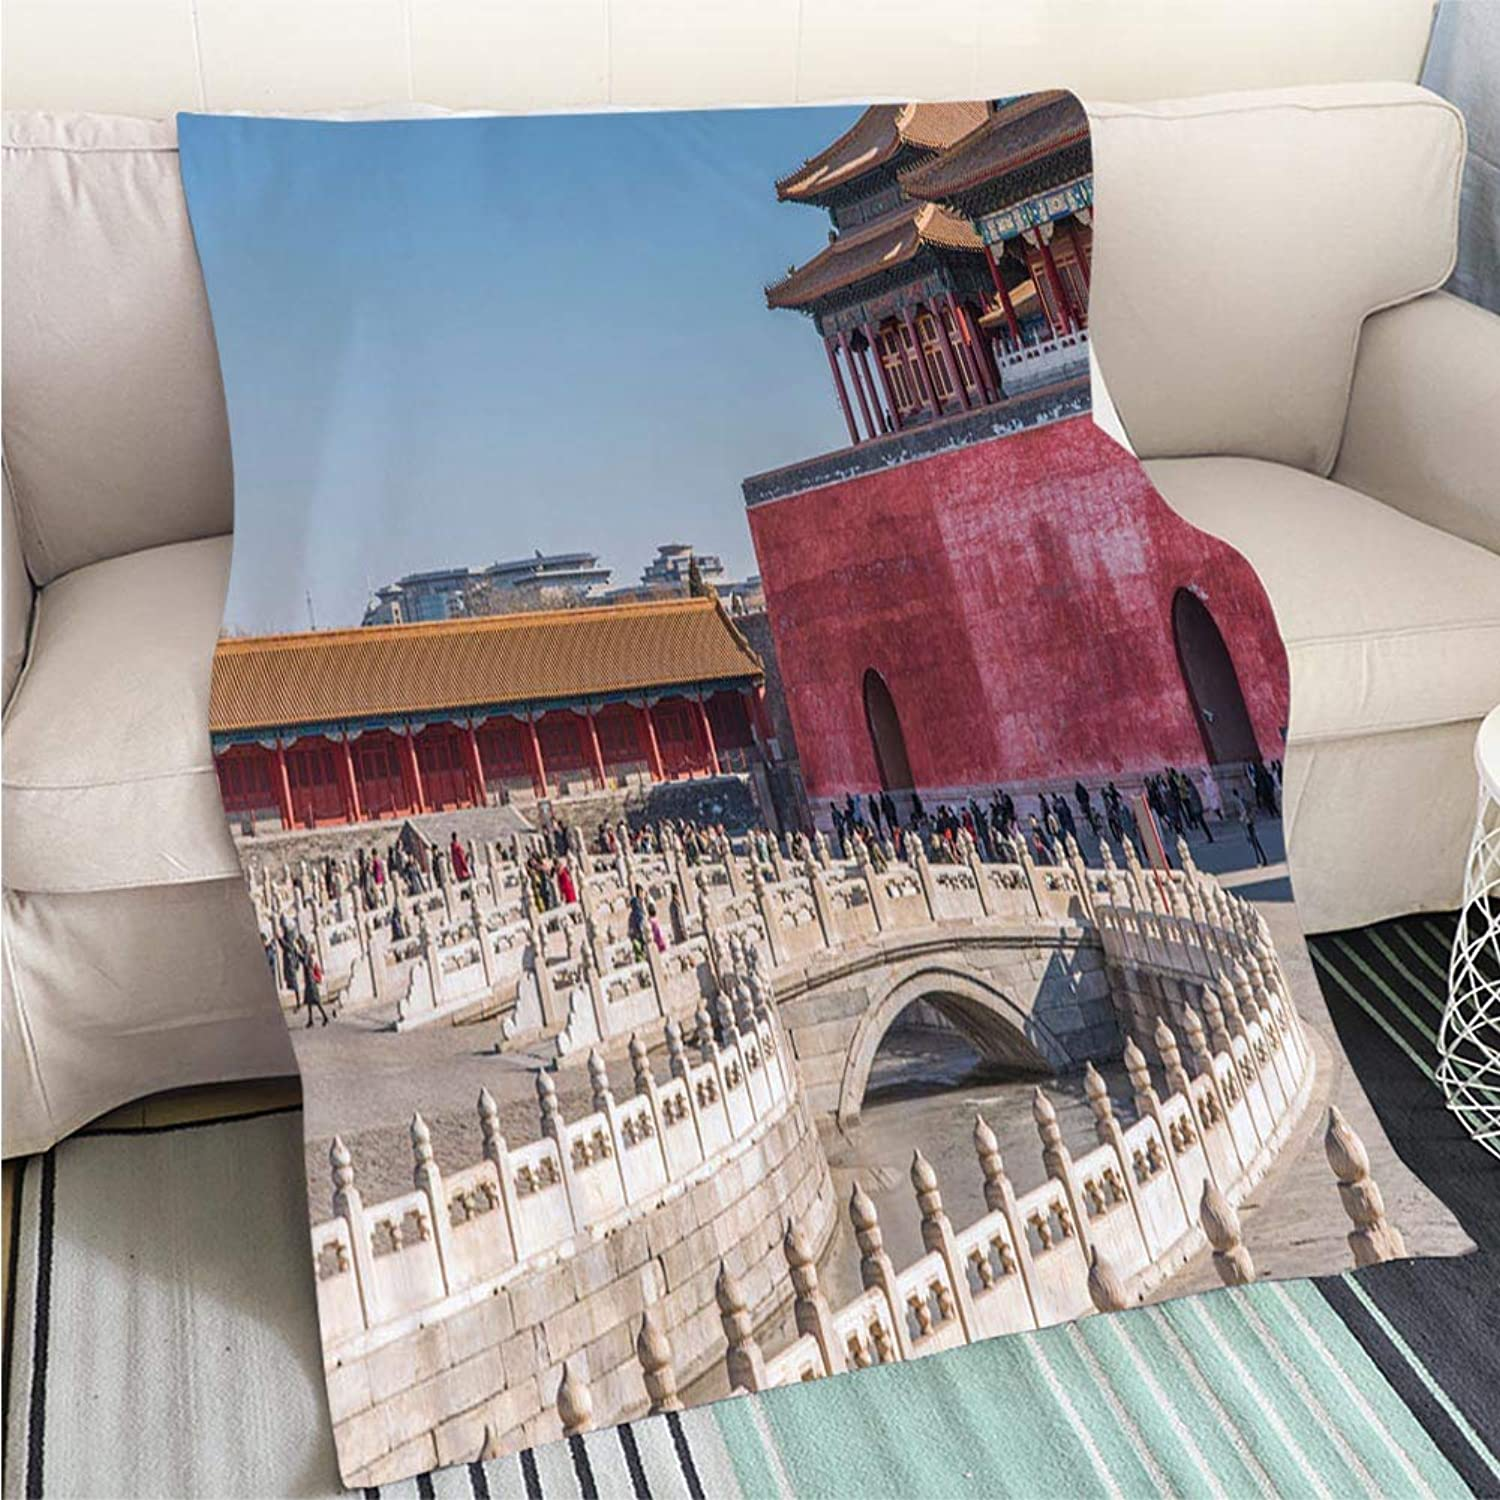 Comforter Multicolor Bed or Couch Supreme Harmony Square in Forbidden City Perfect for Couch Sofa or Bed Cool Quilt